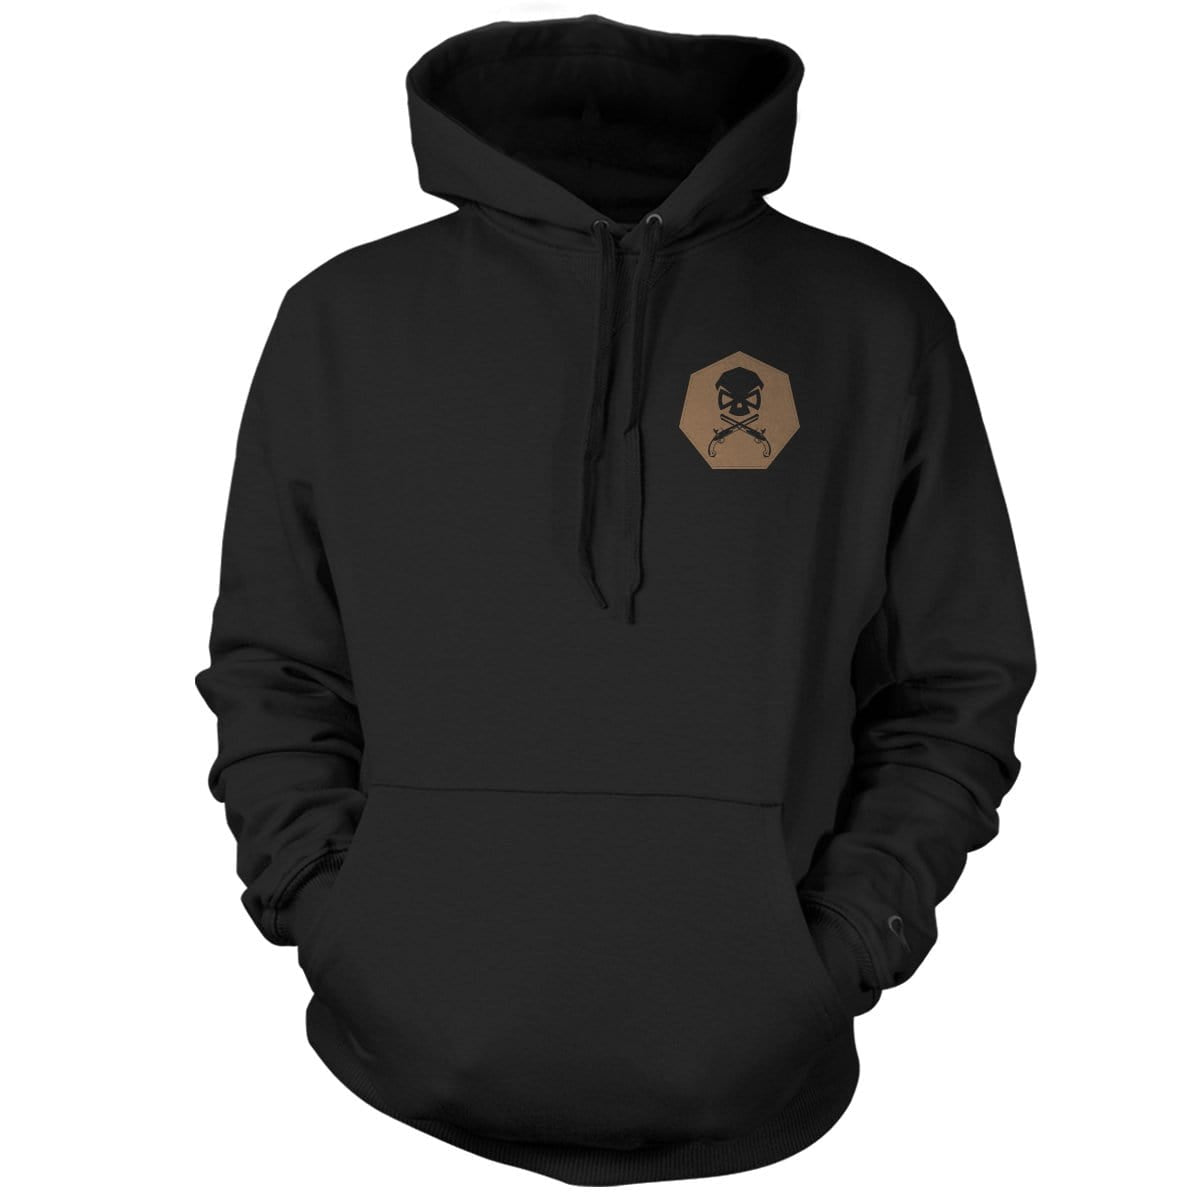 PHUMC Regulators Chapter Hoodie - Pipe Hitters Union